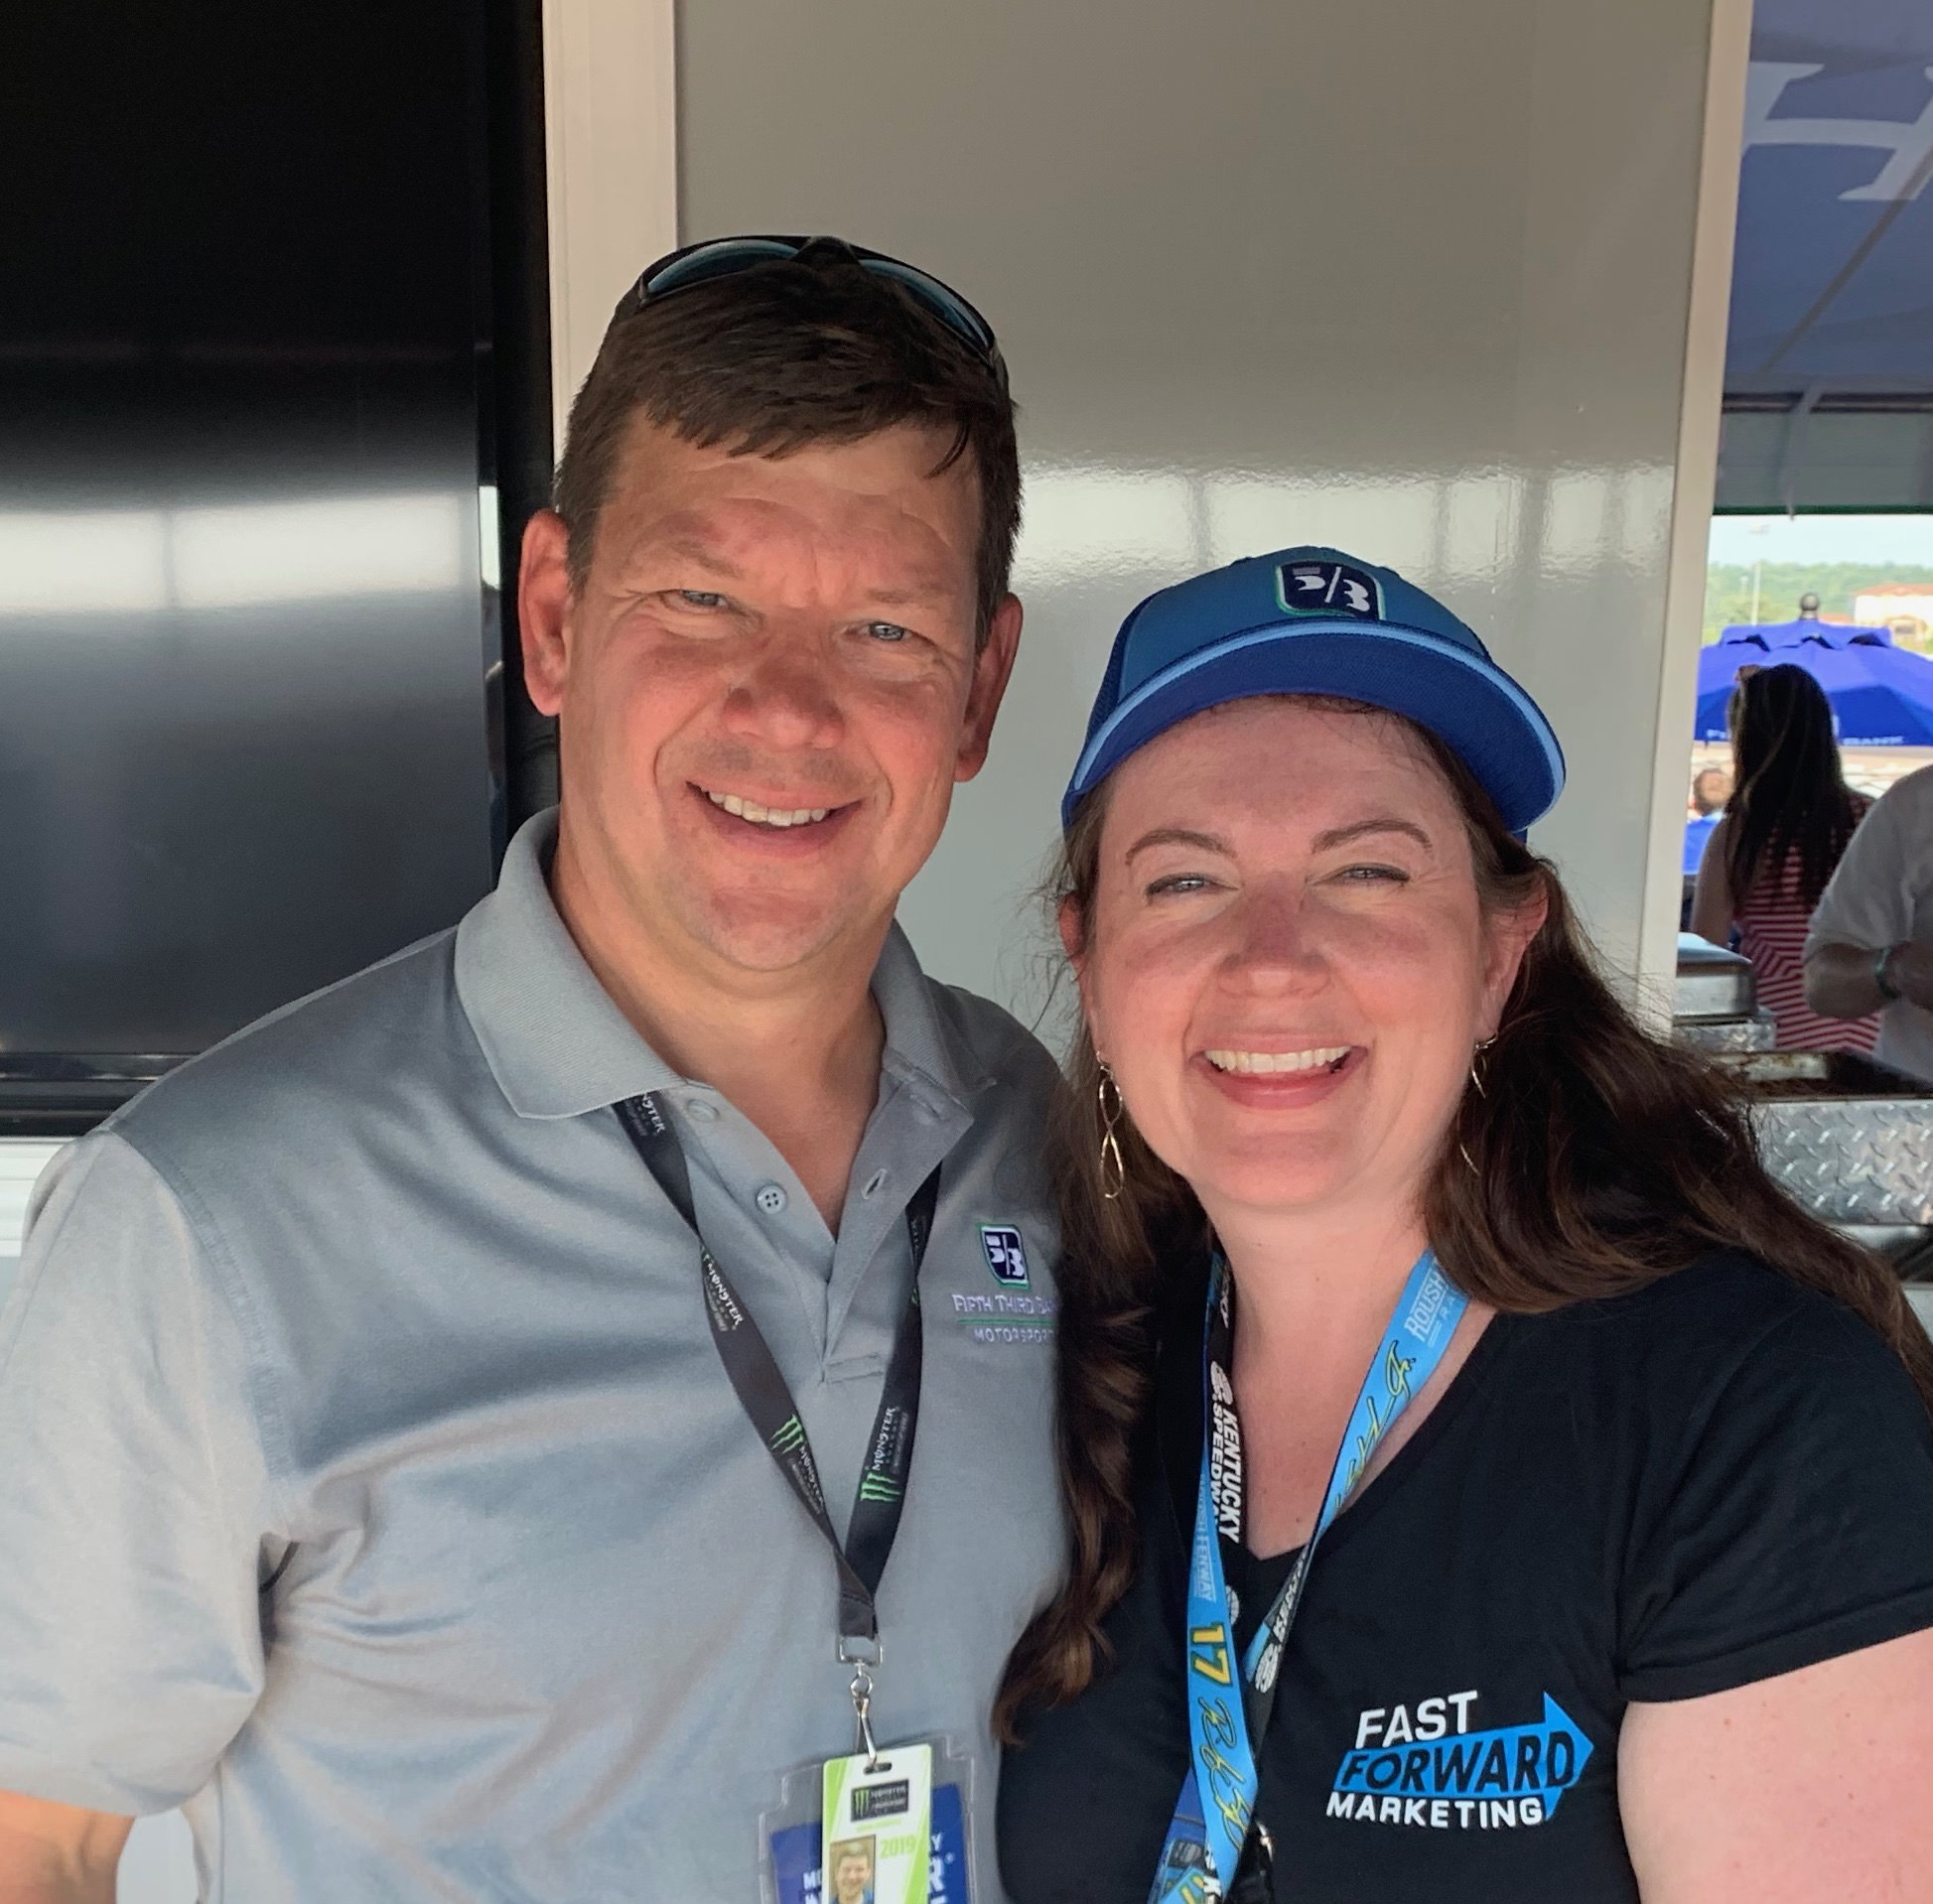 Vanessa with Alan Sulek, Vice President Business Banking Motorsports at Fifth Third Bank